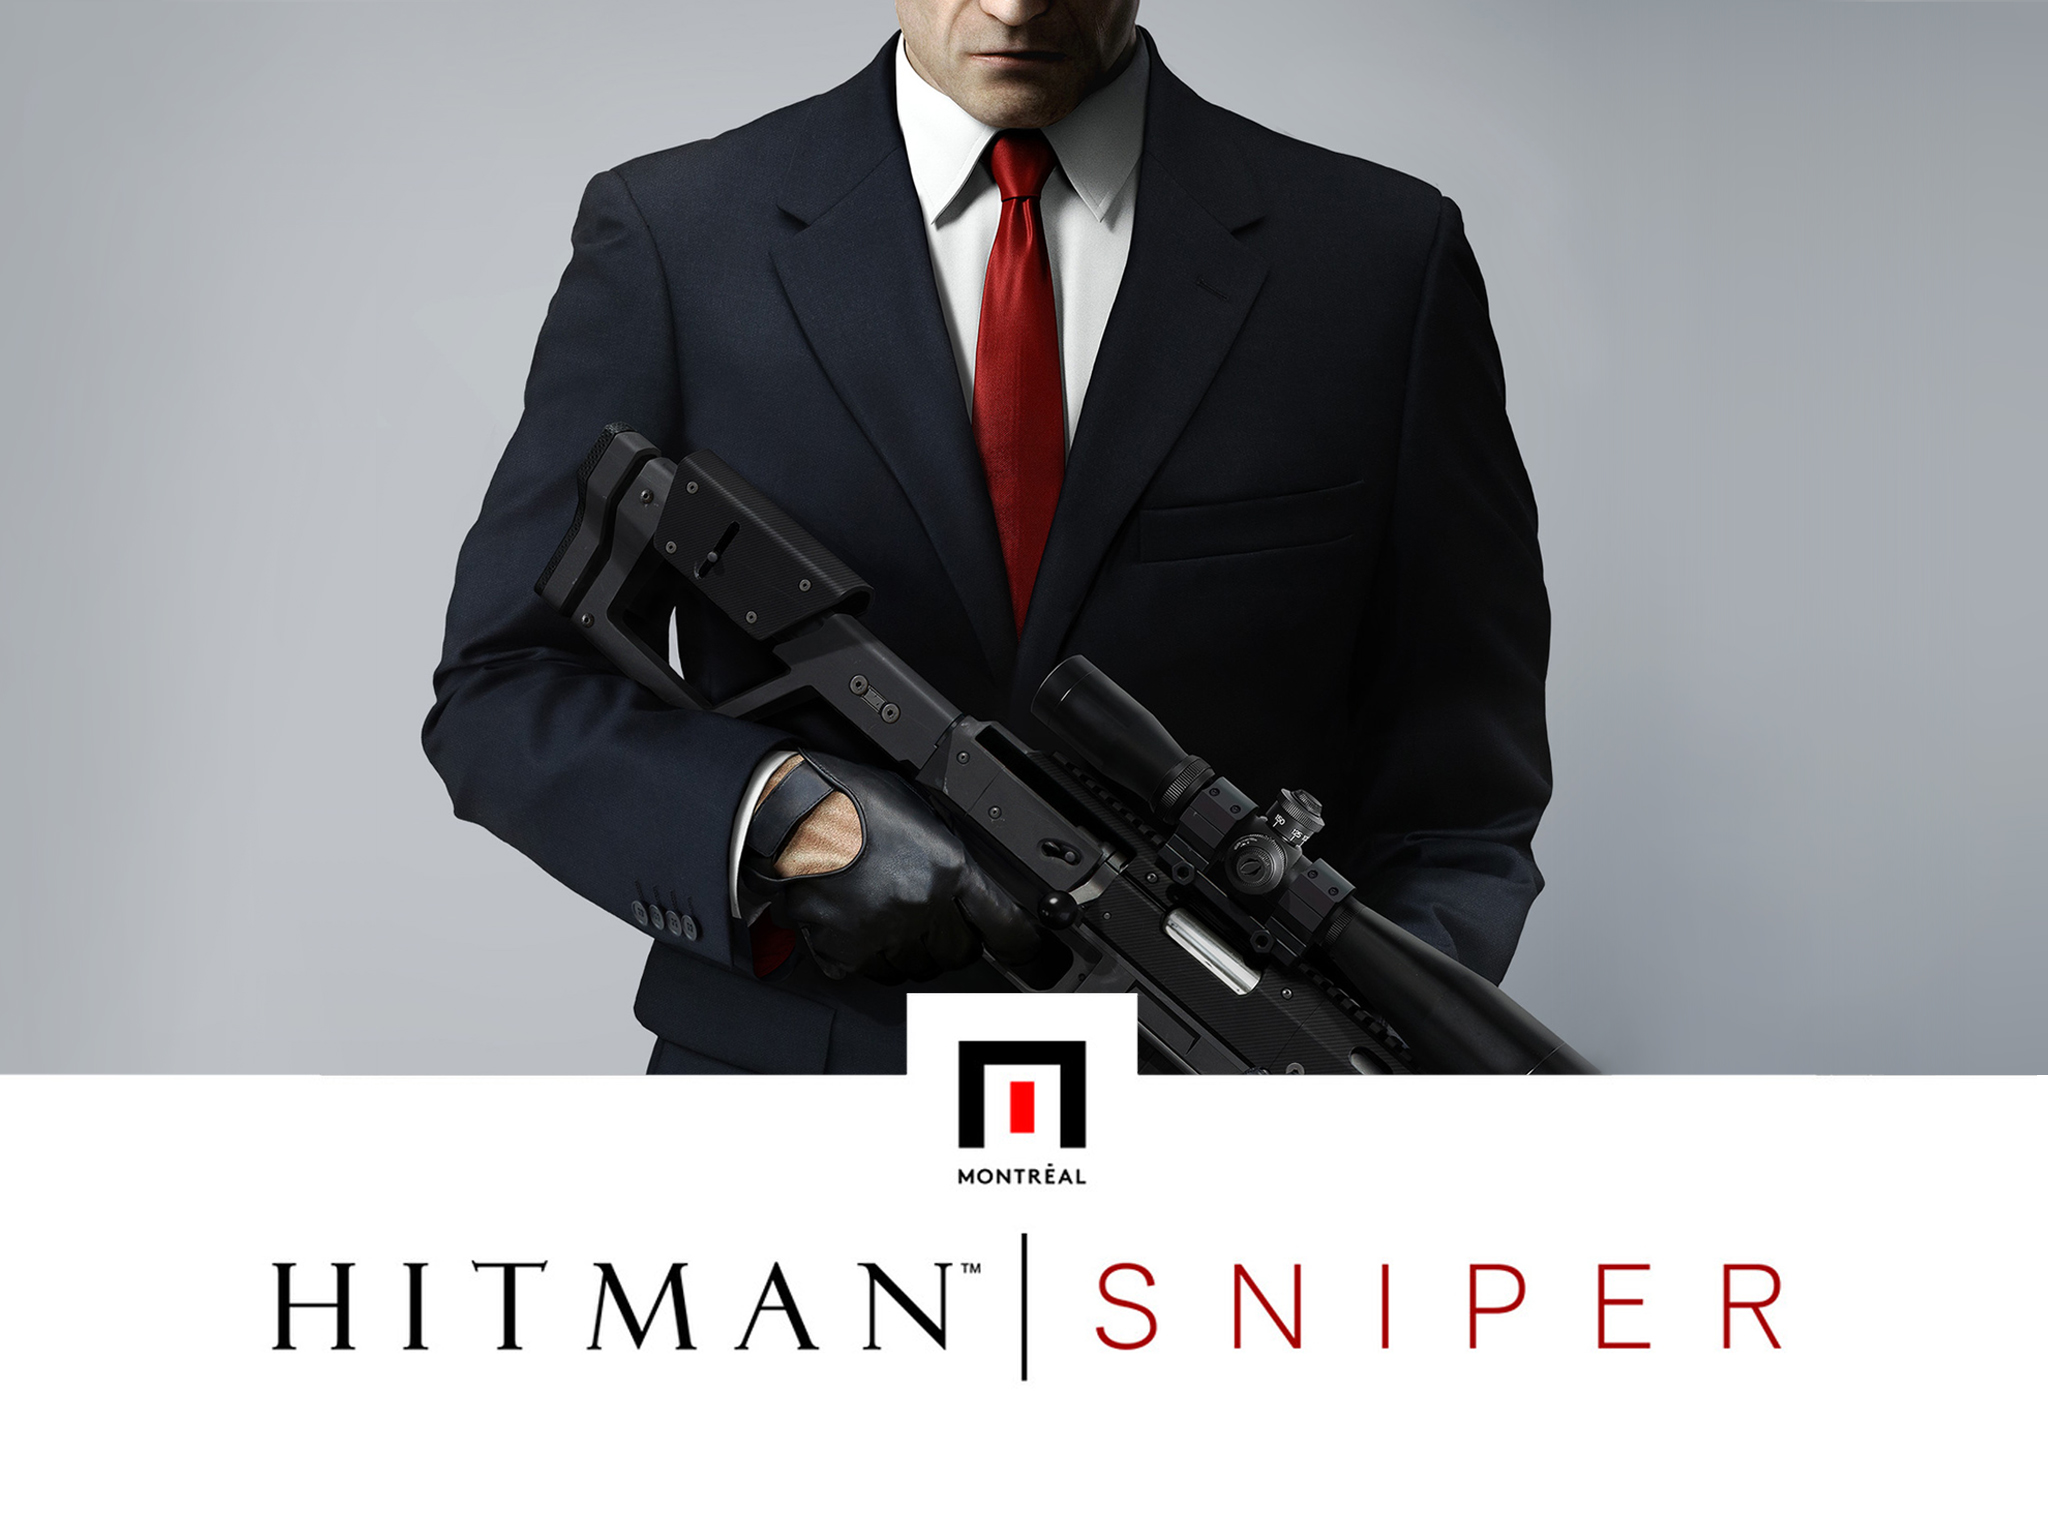 Box art - Hitman Sniper